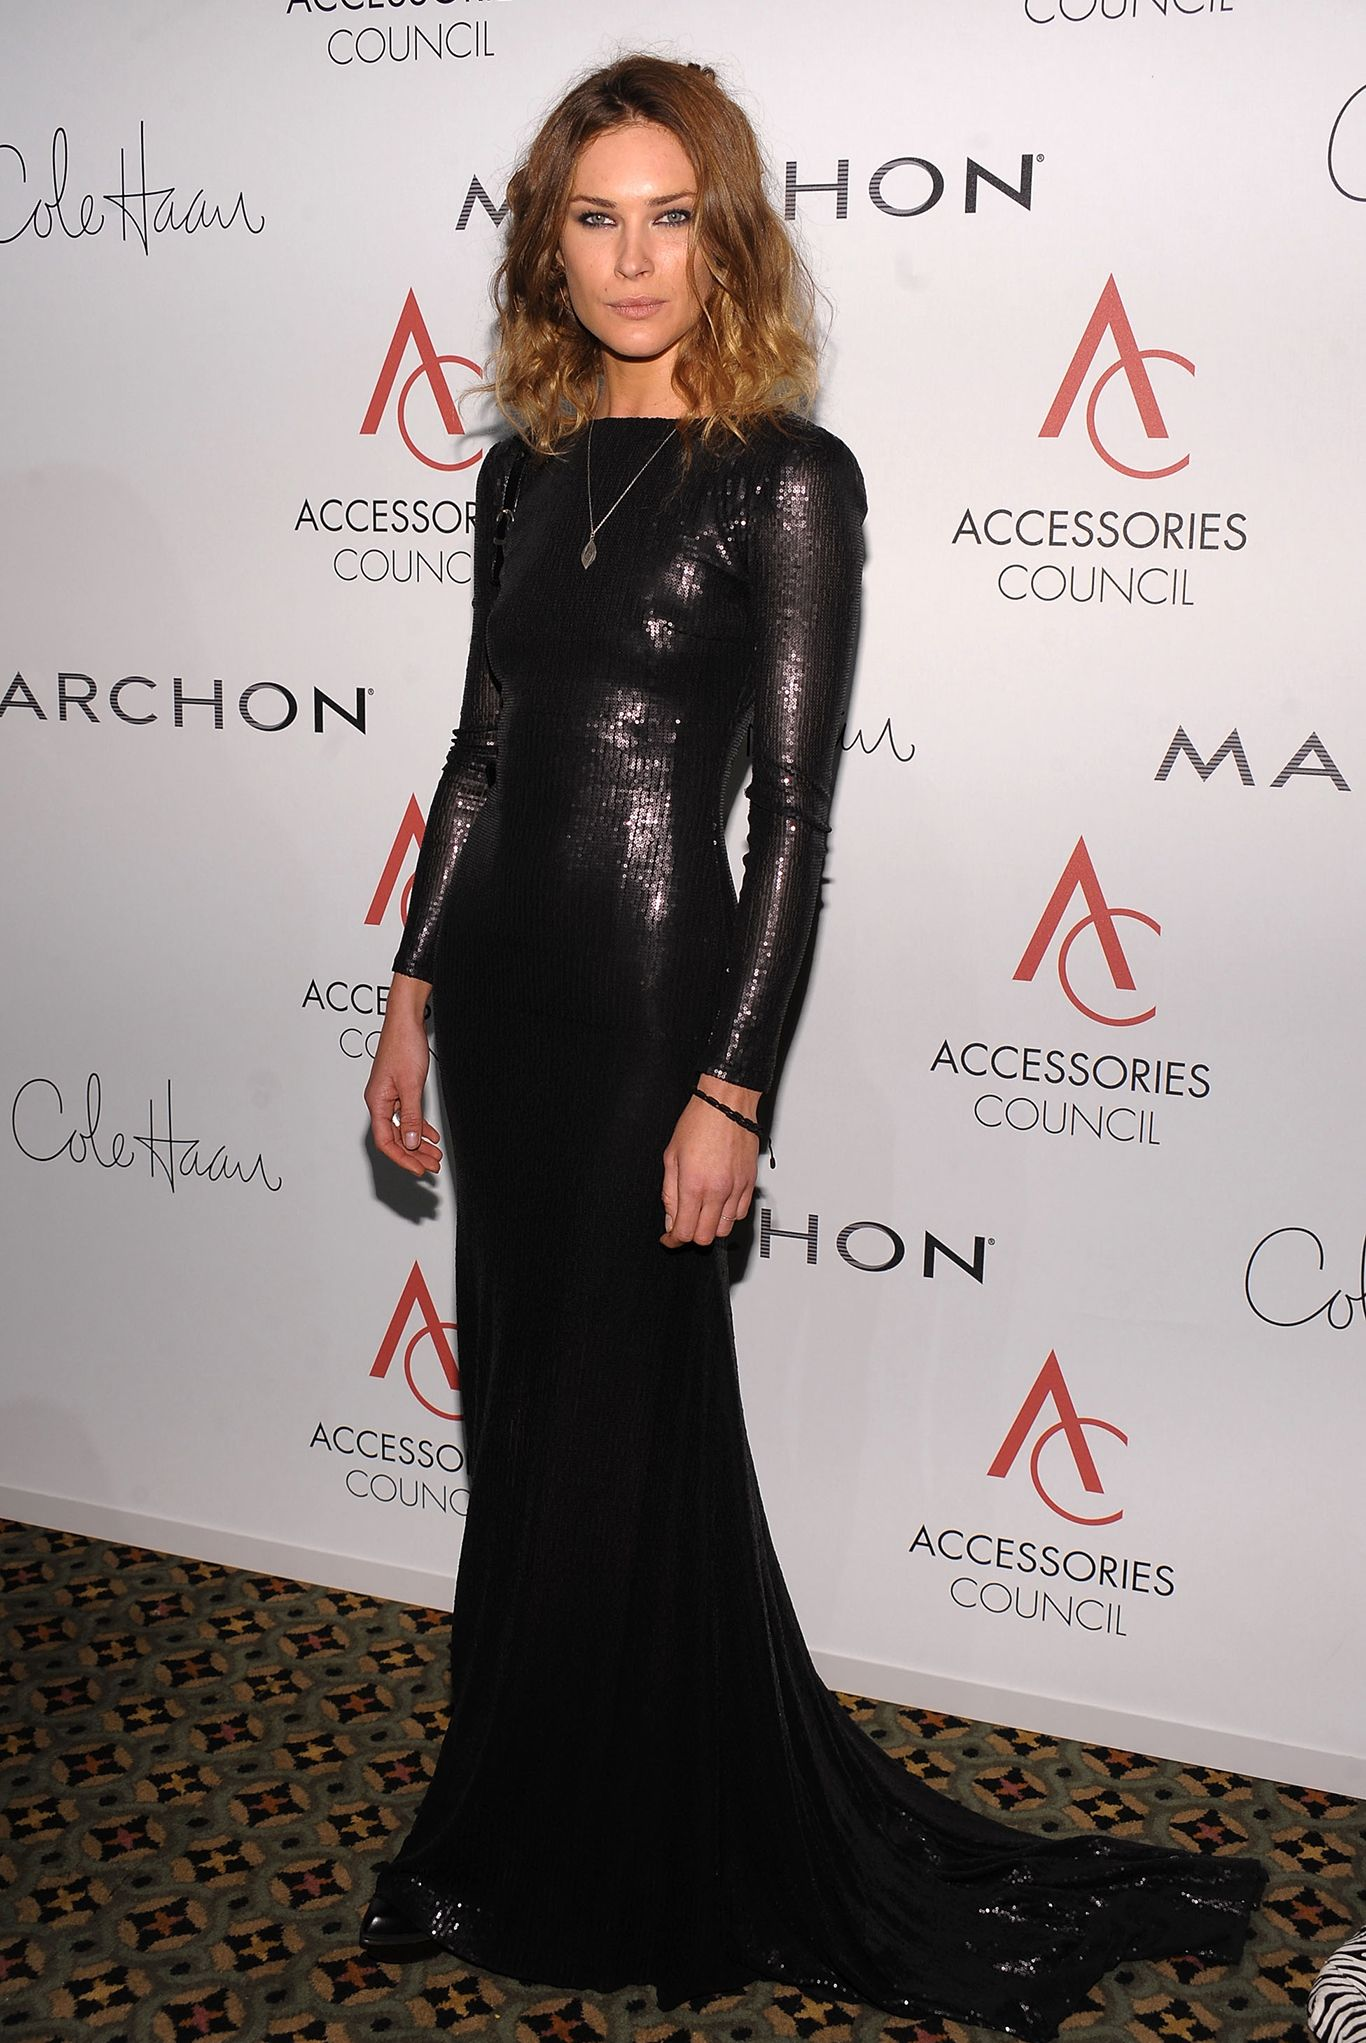 Erin wasson uci want to look like a really chic ranch hand